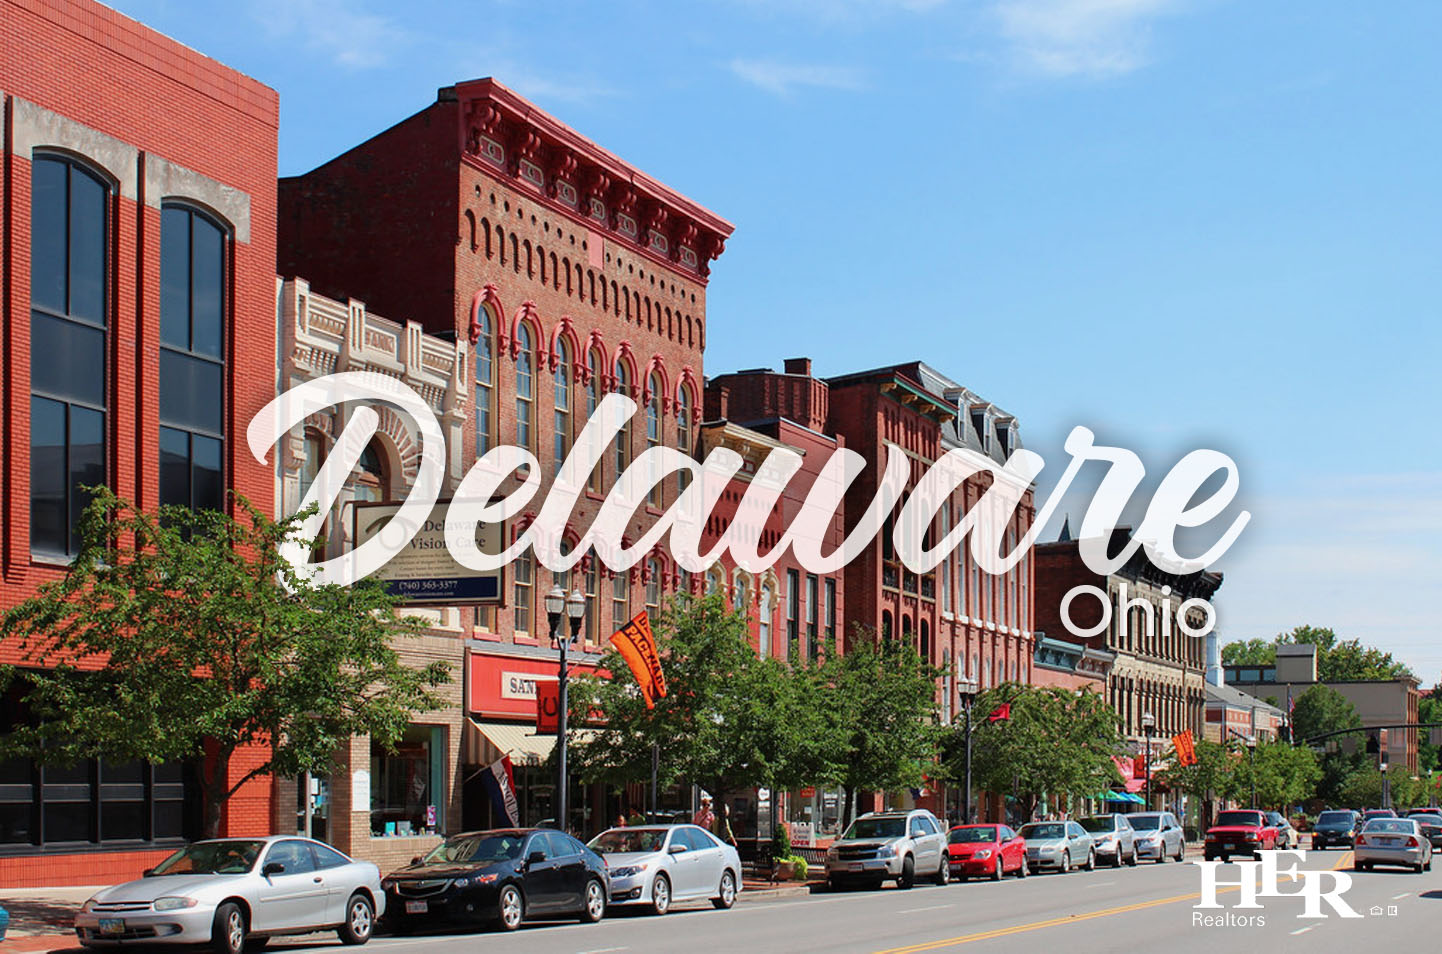 an aerial view of the town of delaware ohio on a sunny day